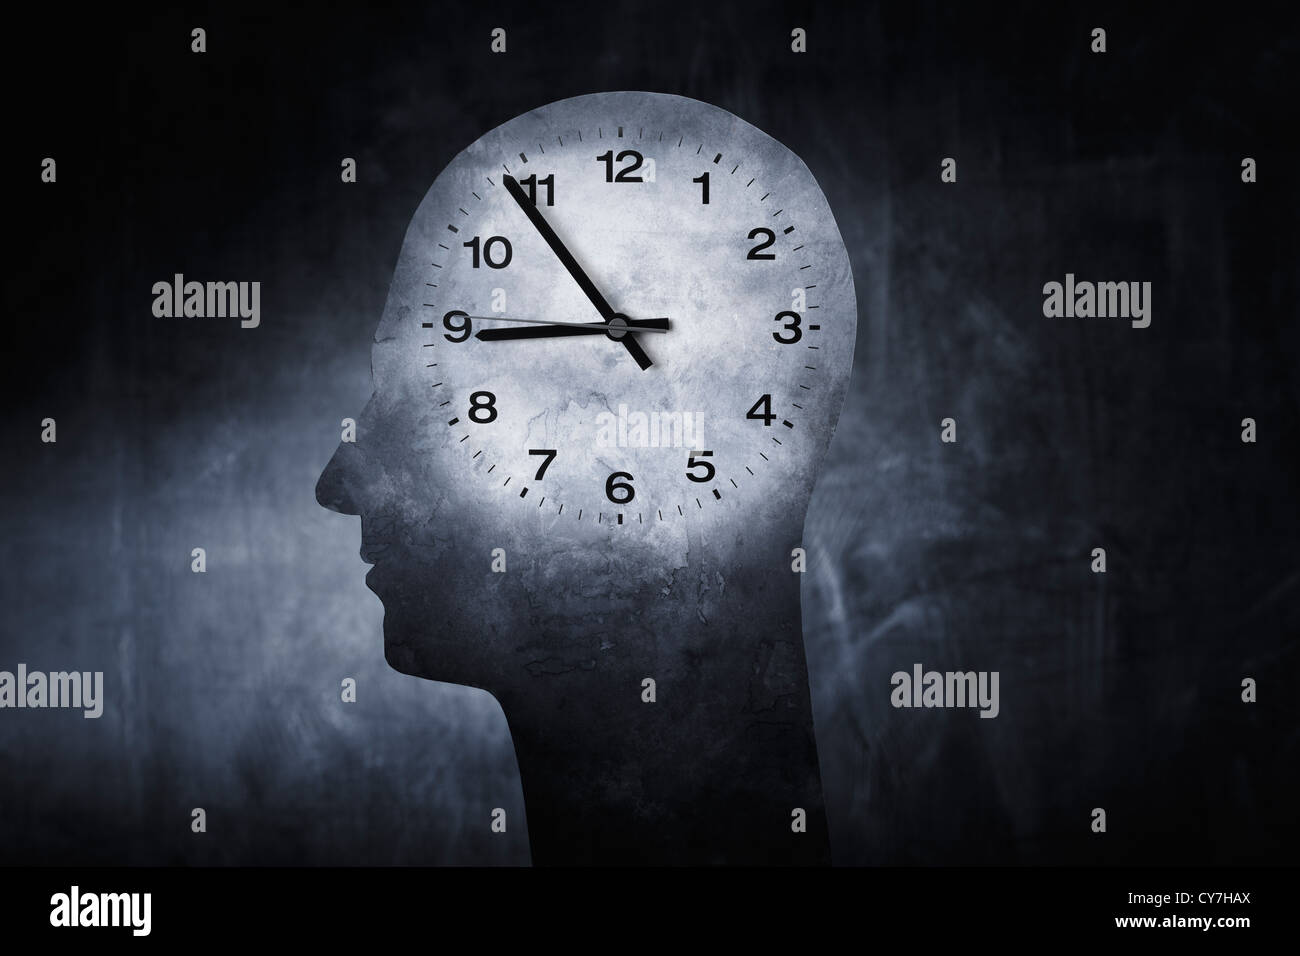 Conceptual image of a clock superimposed on a head of a human. - Stock Image